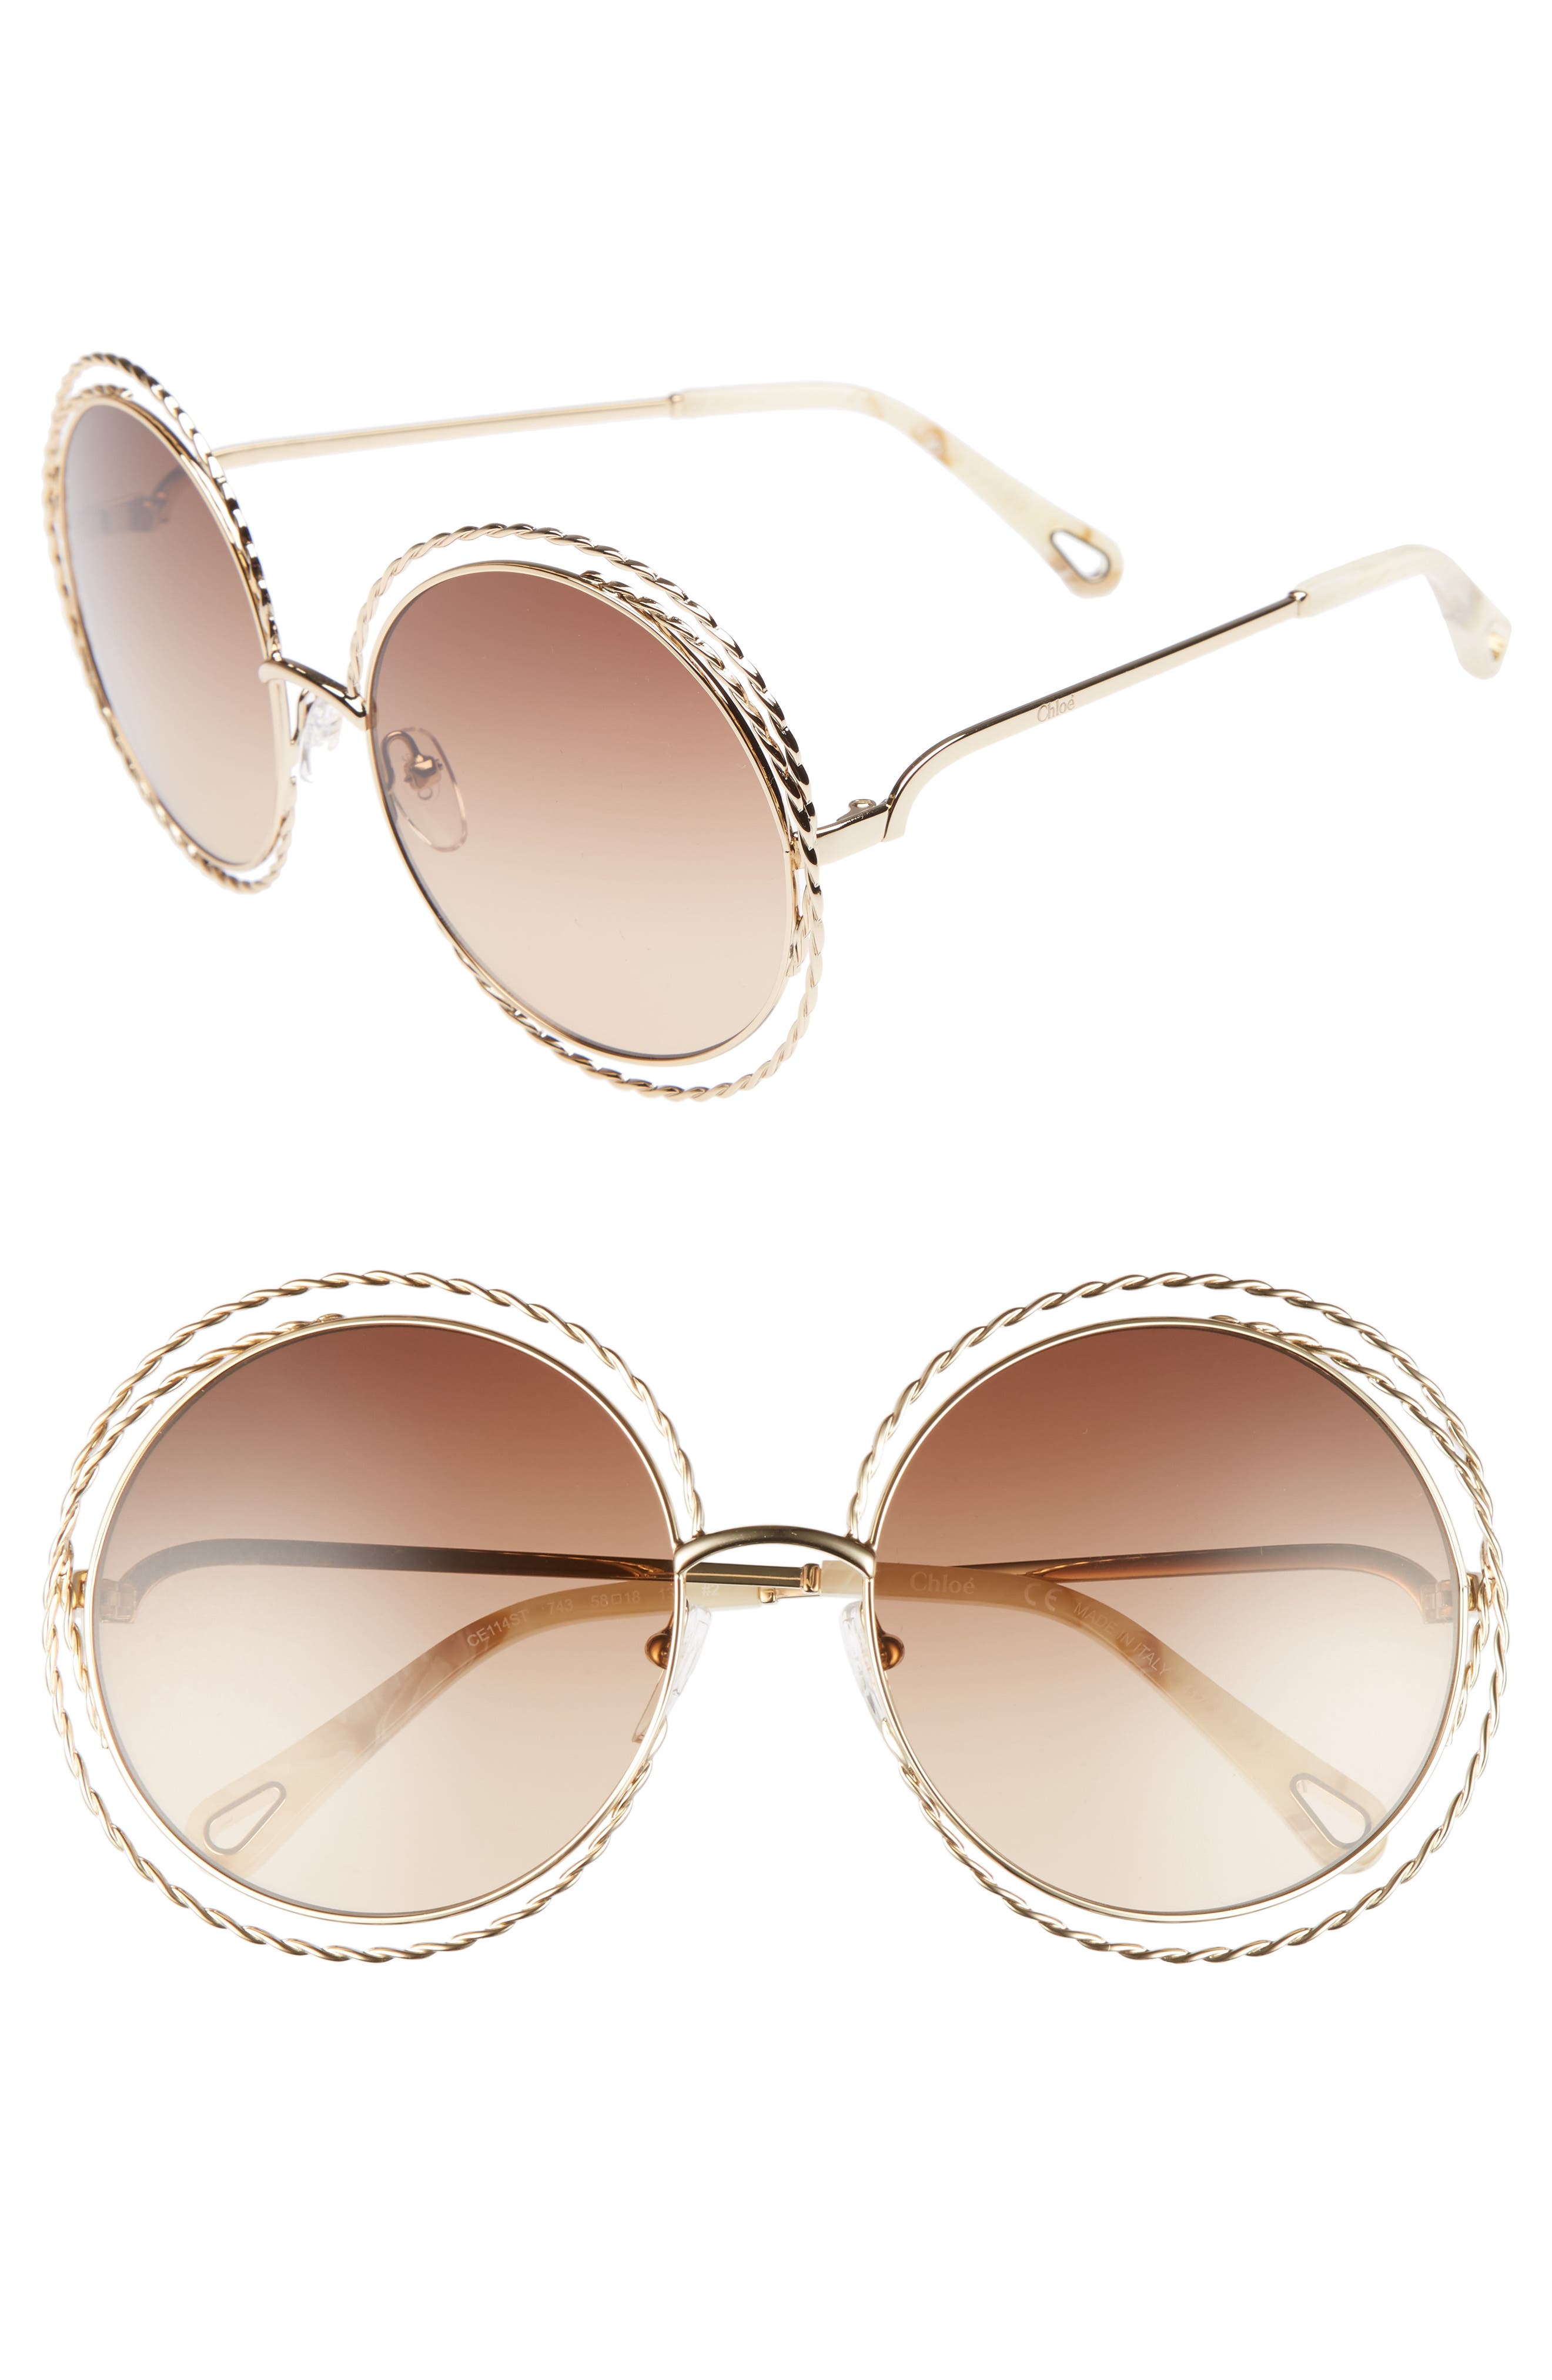 CHLOÉ, Carlina Torsade 58mm Round Sunglasses, Main thumbnail 1, color, GOLD/ BROWN